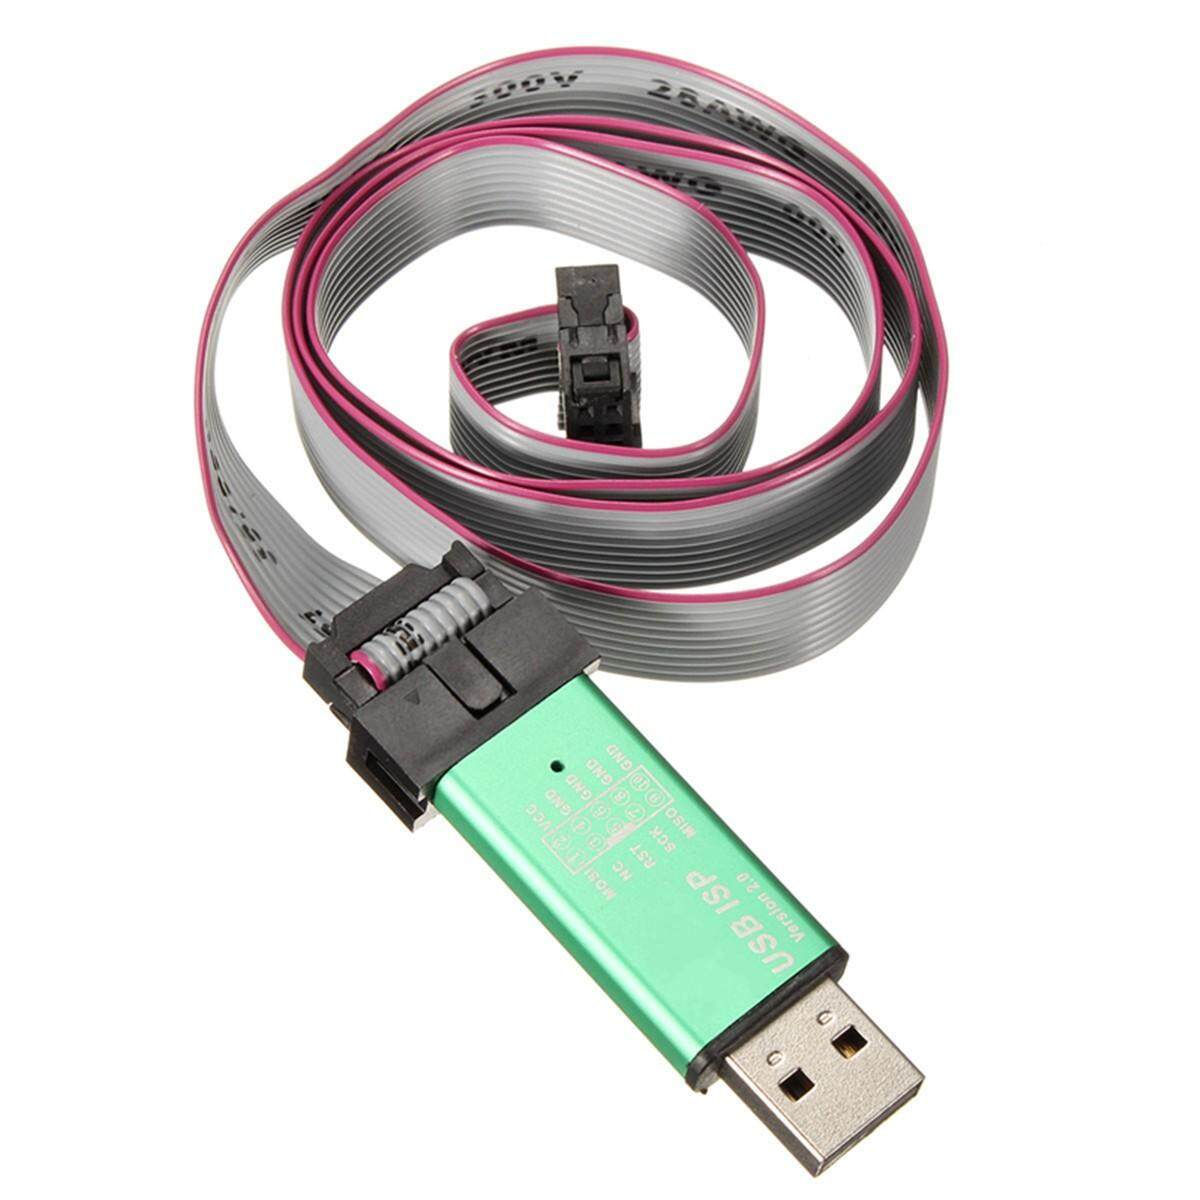 Mini Video Adapters For Sale Display Adapter Prices Usb Avr Programmer Electronic Device Usbasp Isp Atmel S51 Win7 Vista At89s51 At89s52 Intl